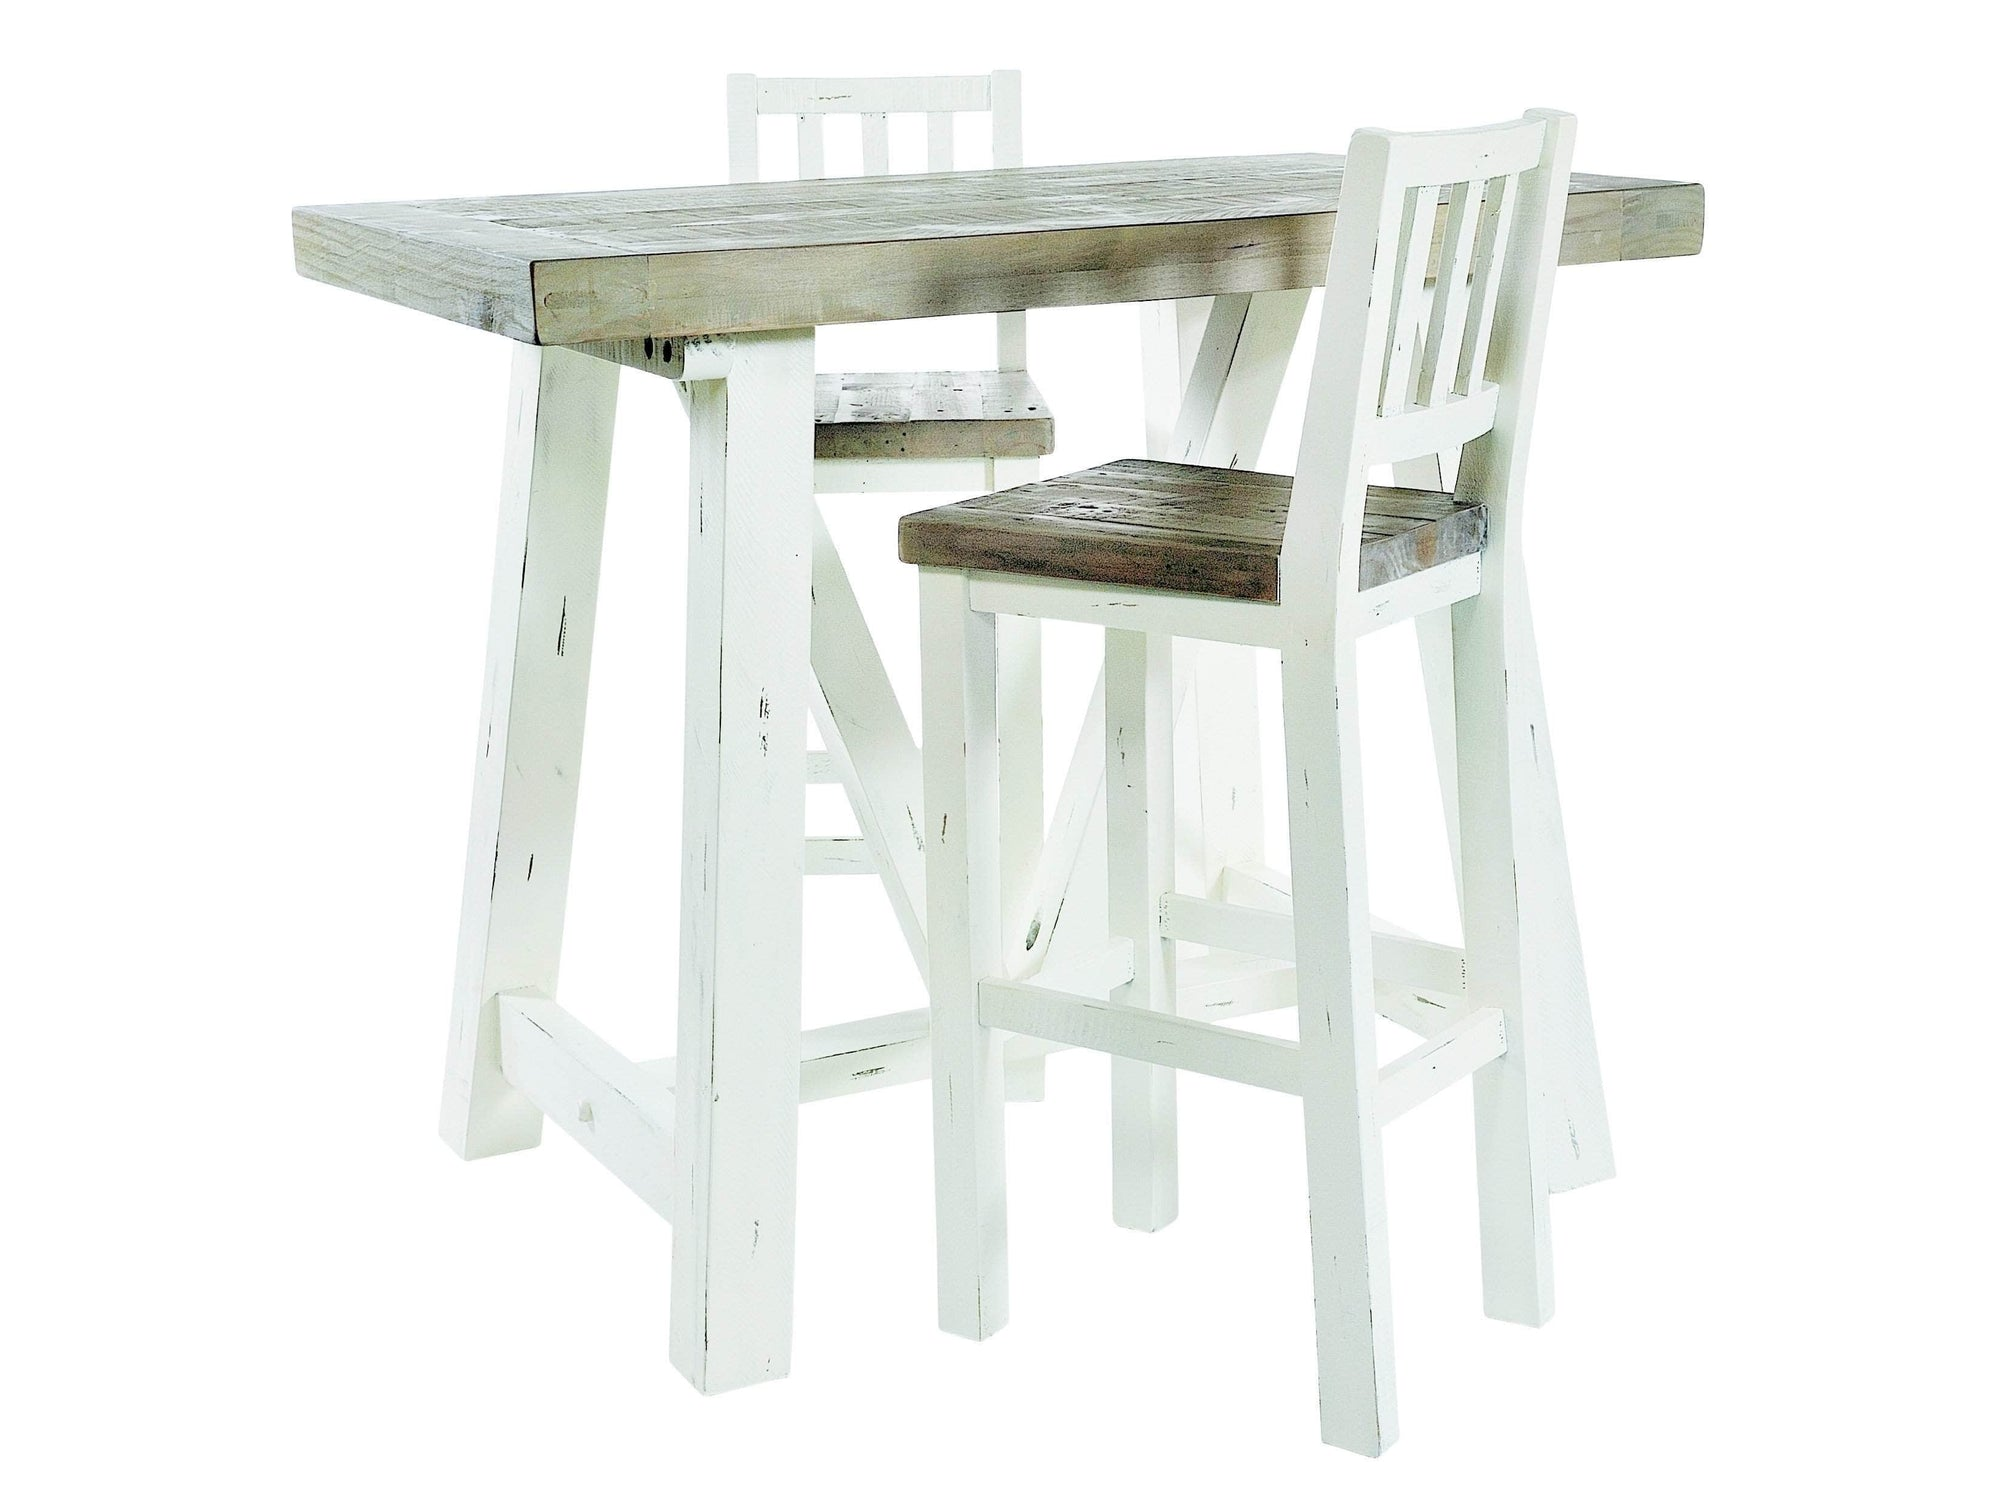 Paxford shabby chic bar table